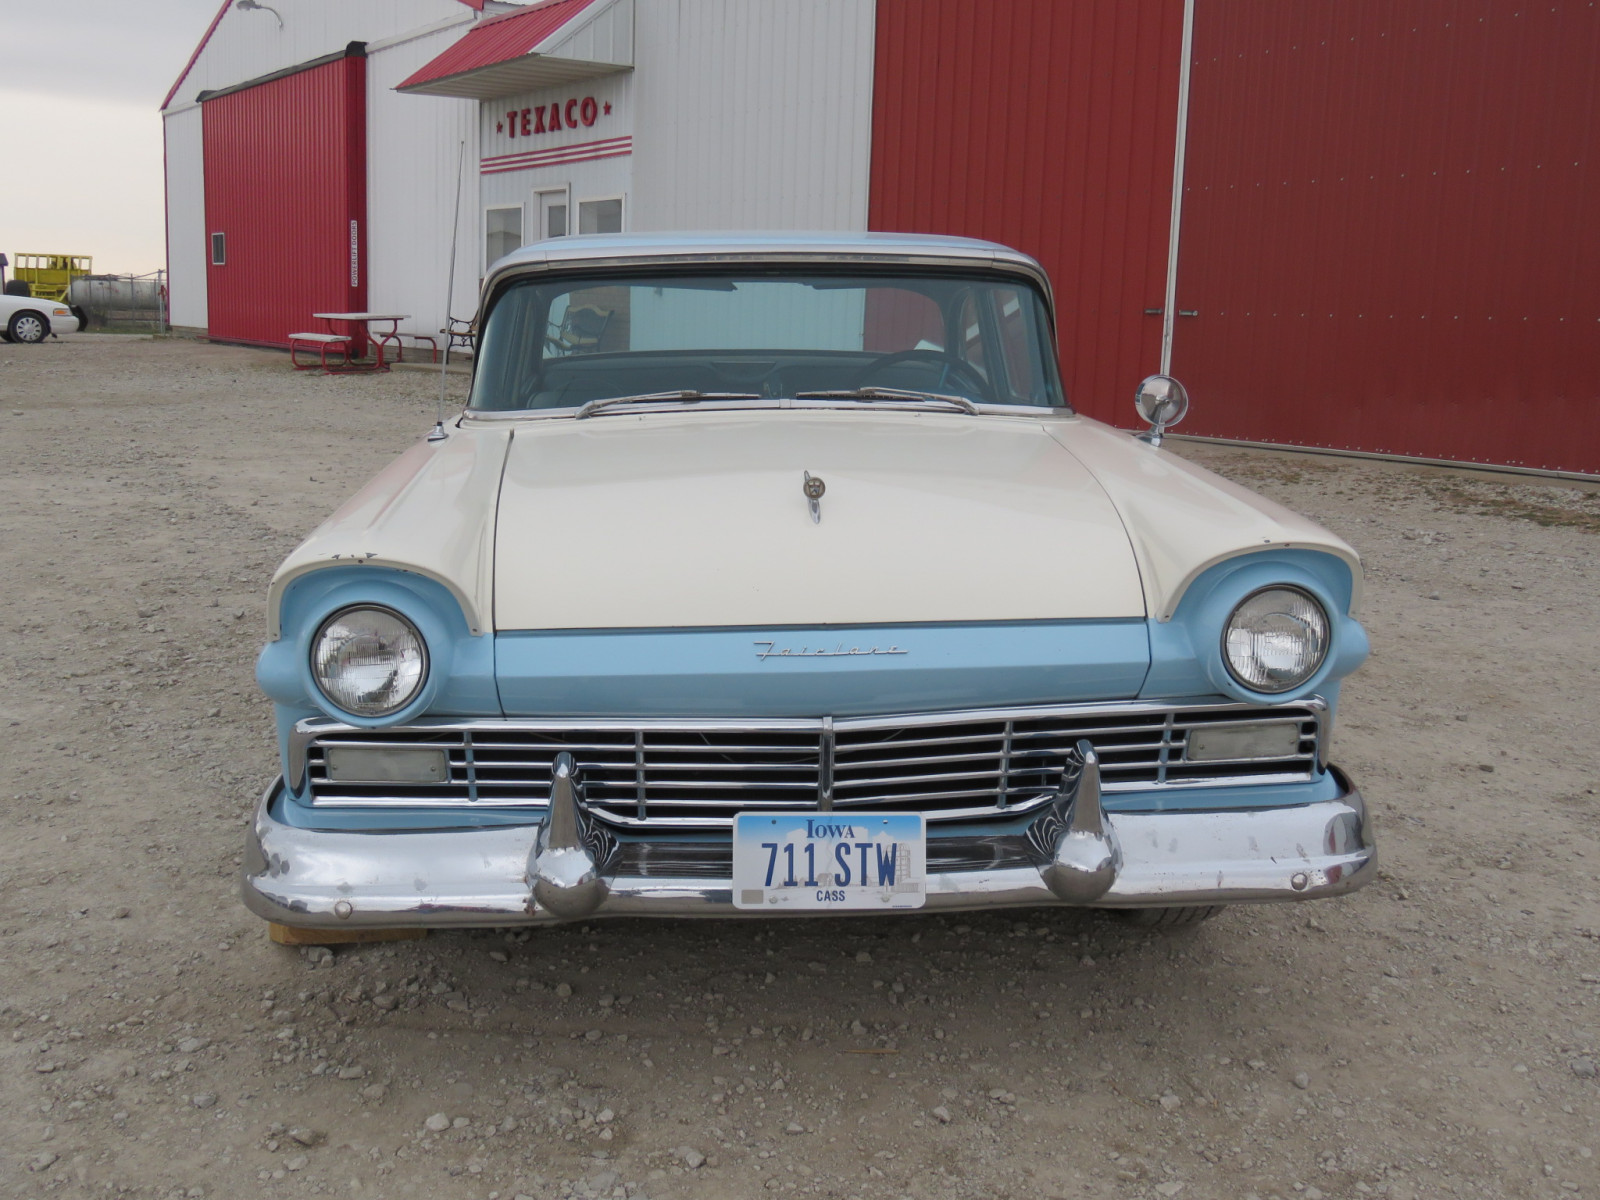 1957 Ford Fairlane 500 4dr Sedan - Image 2